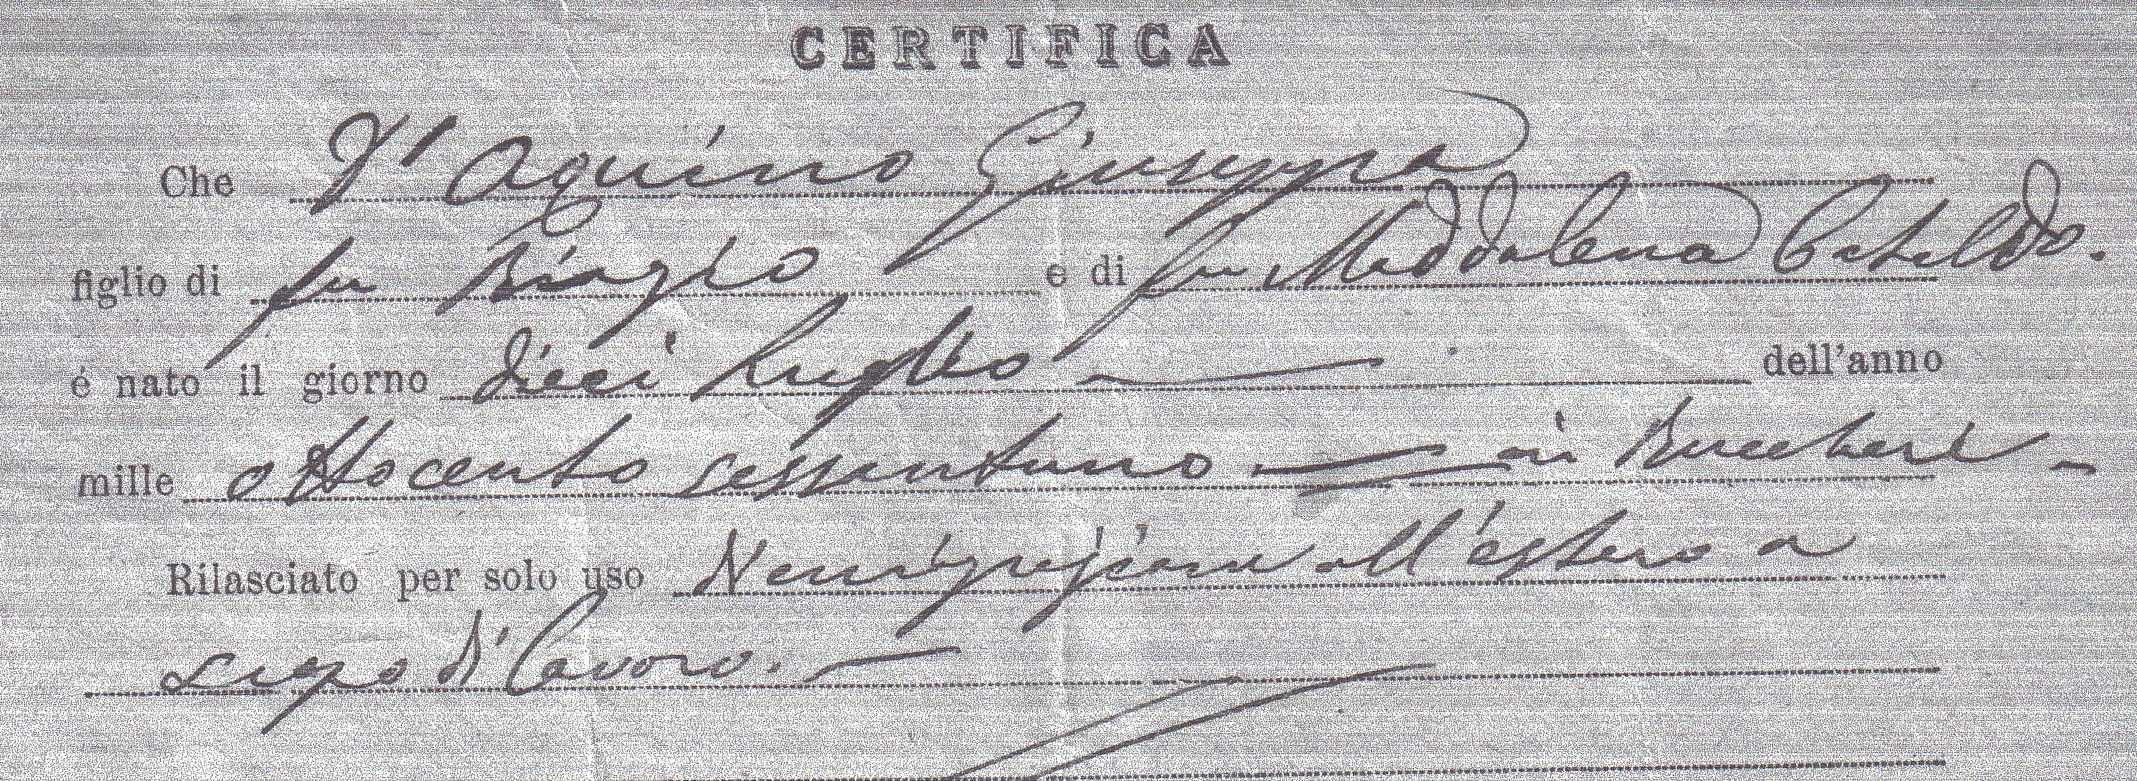 d'aquino birth record.jpg